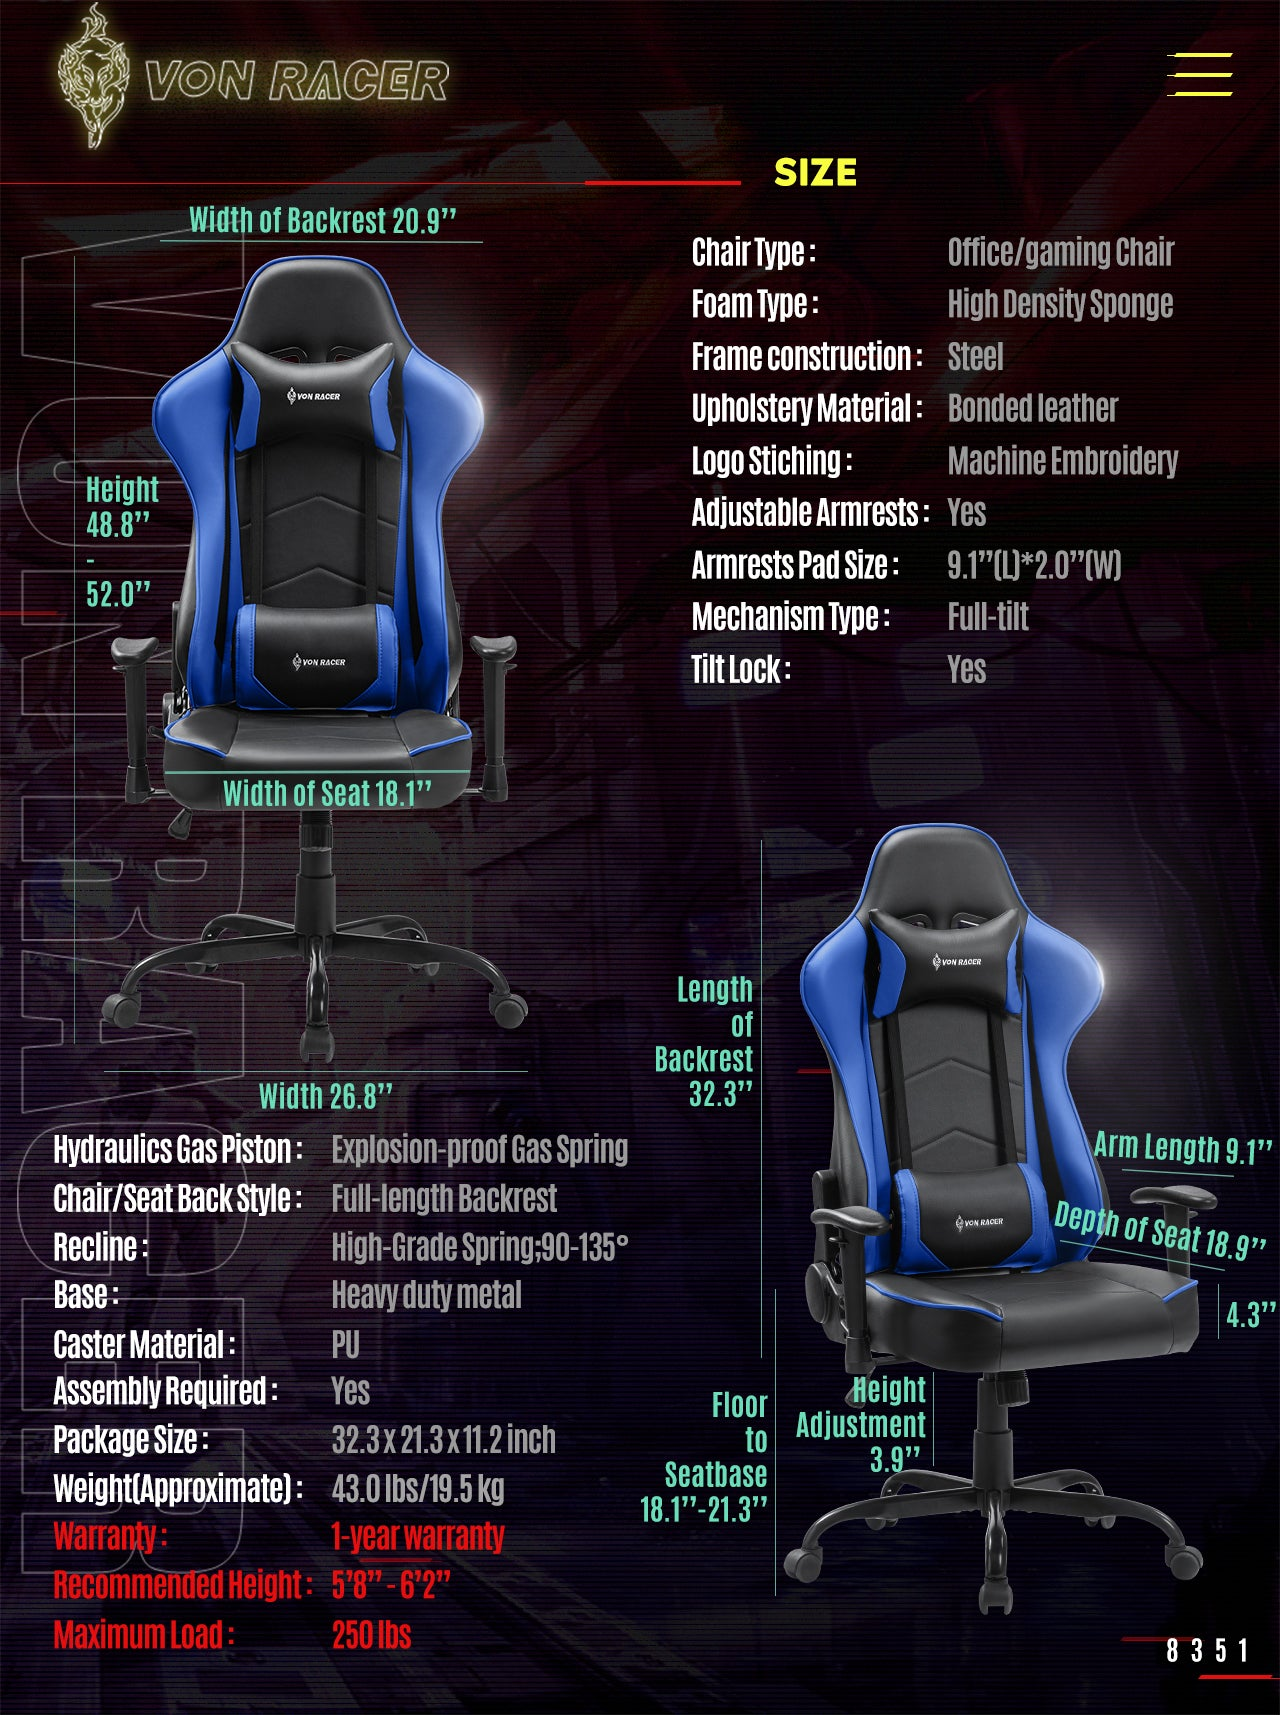 VON RACER Gaming Chair ADDAX Series Ergonomic blue gaming desk chair specification